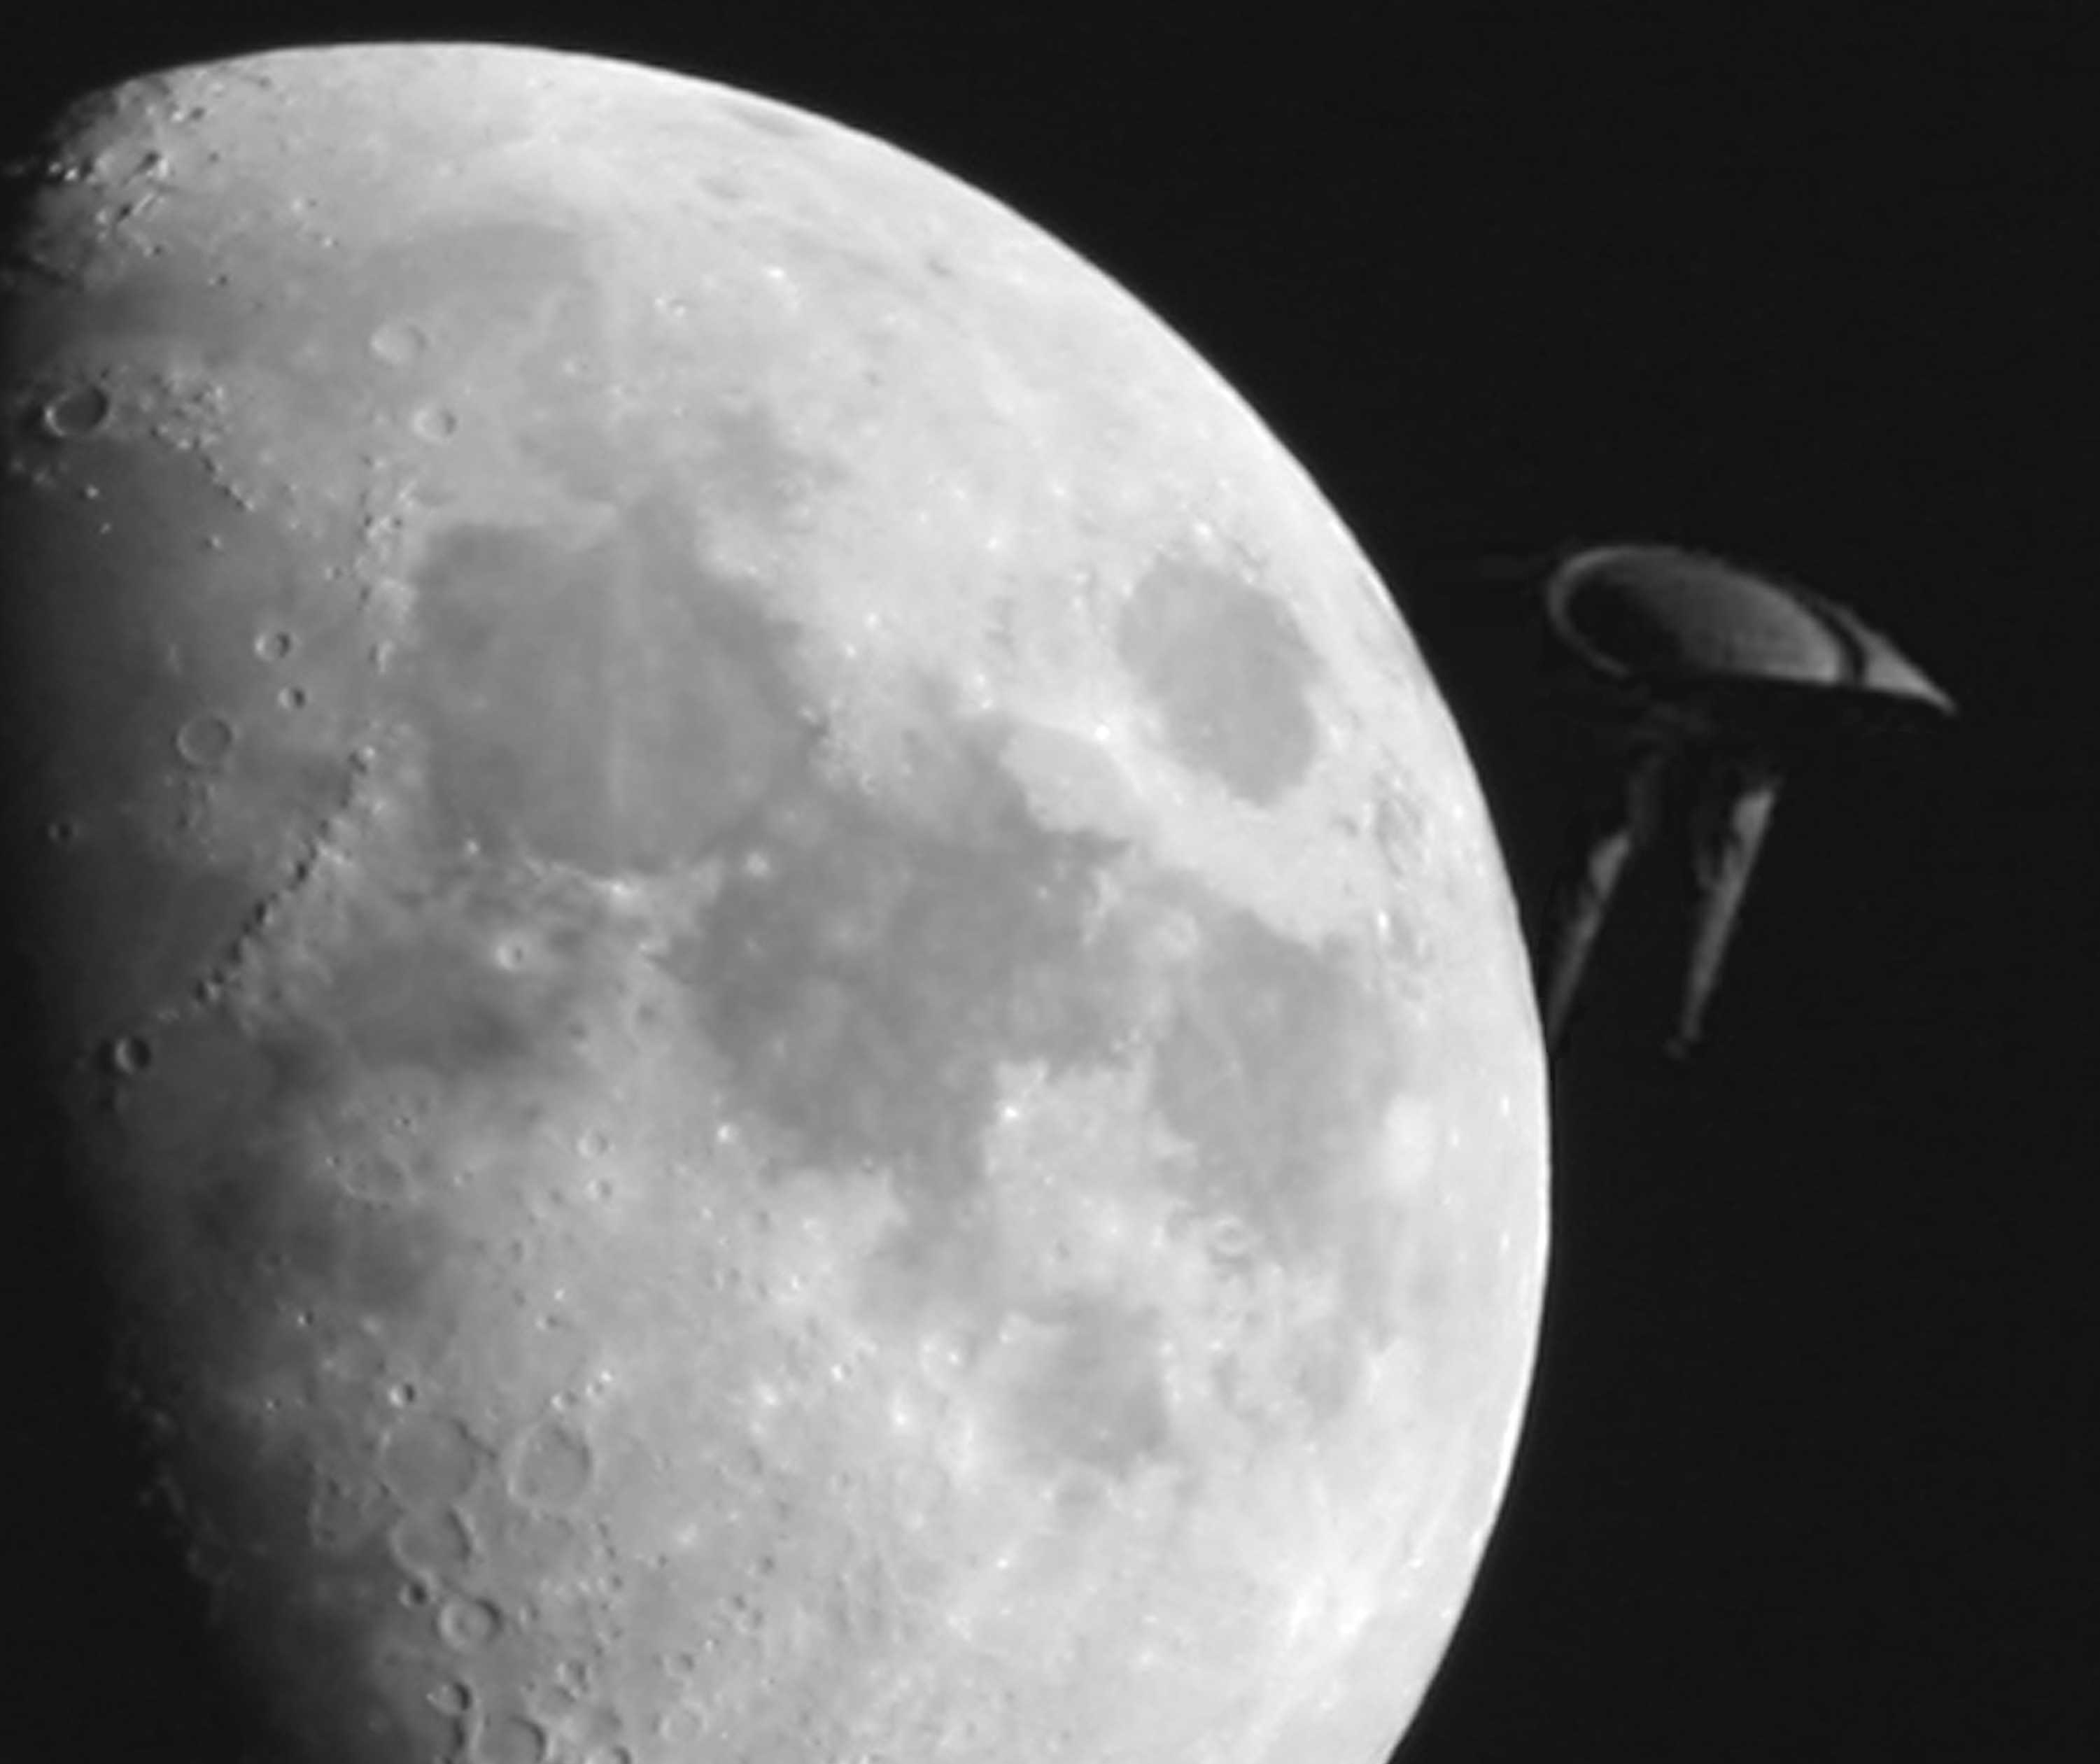 Whistleblower: Massive Extraterrestrial Crafts Hiding Behind Moon